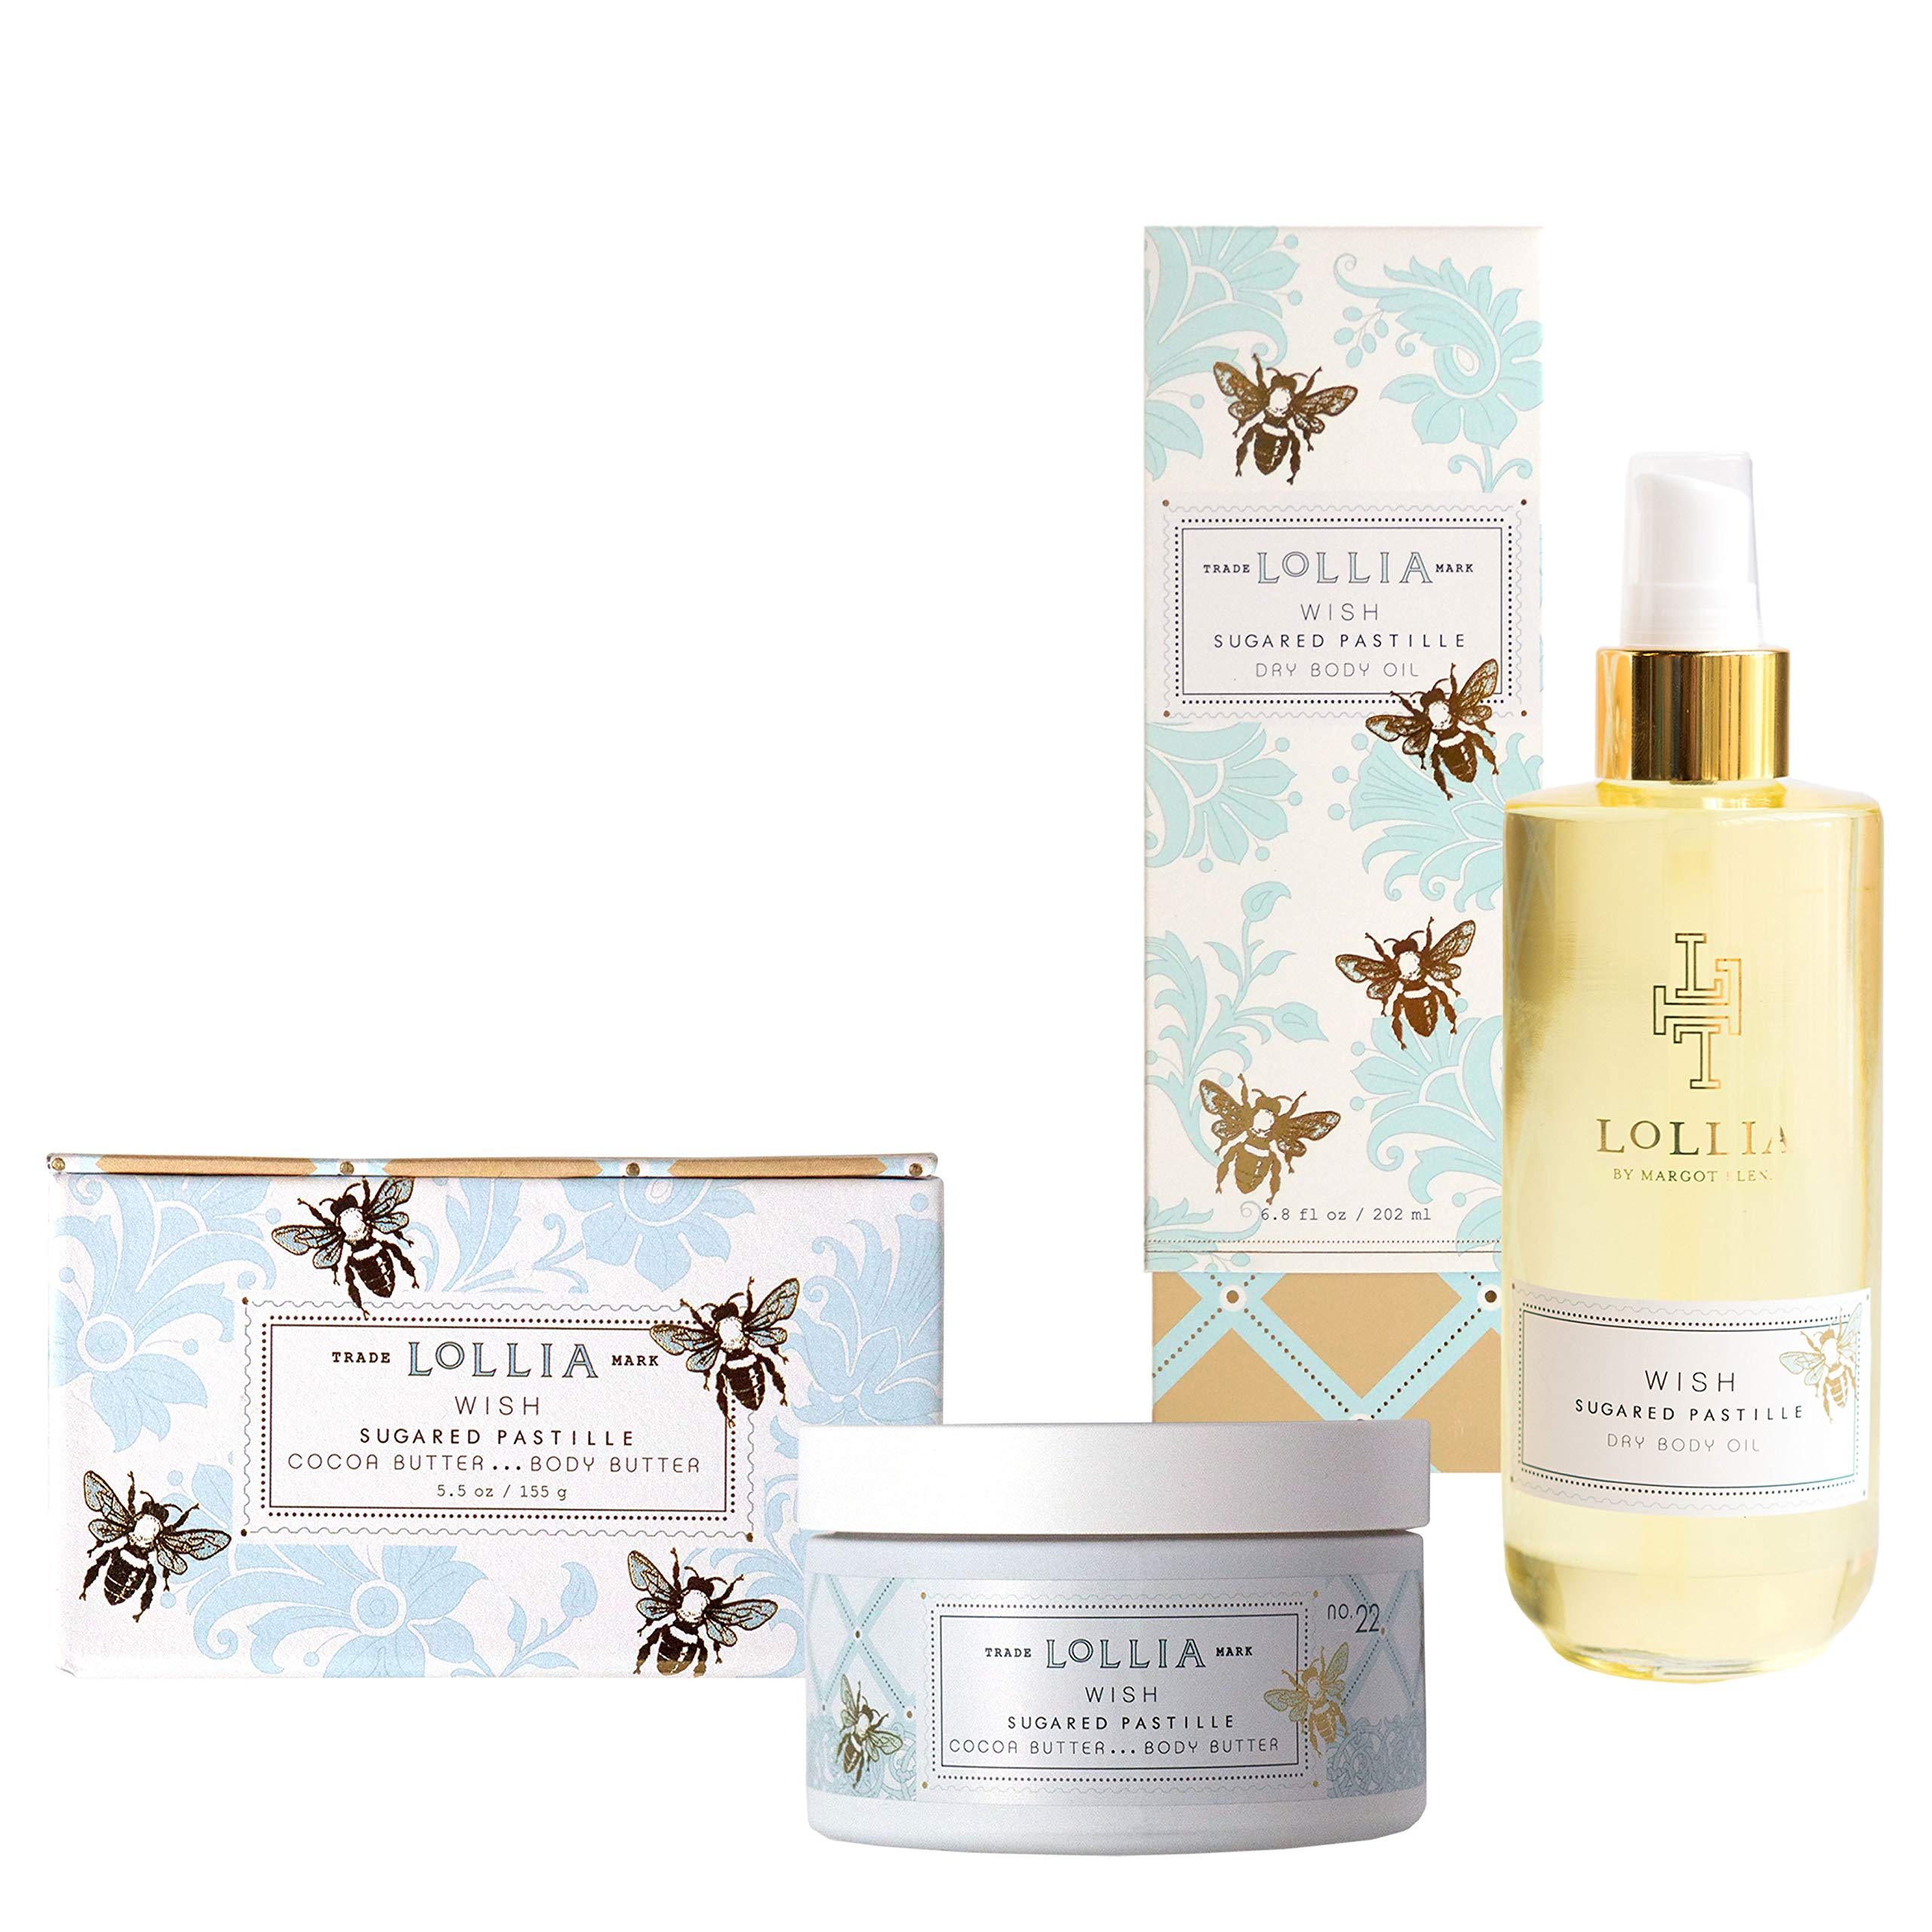 Wish Whipped Body Butter & Dry Body Oil Set